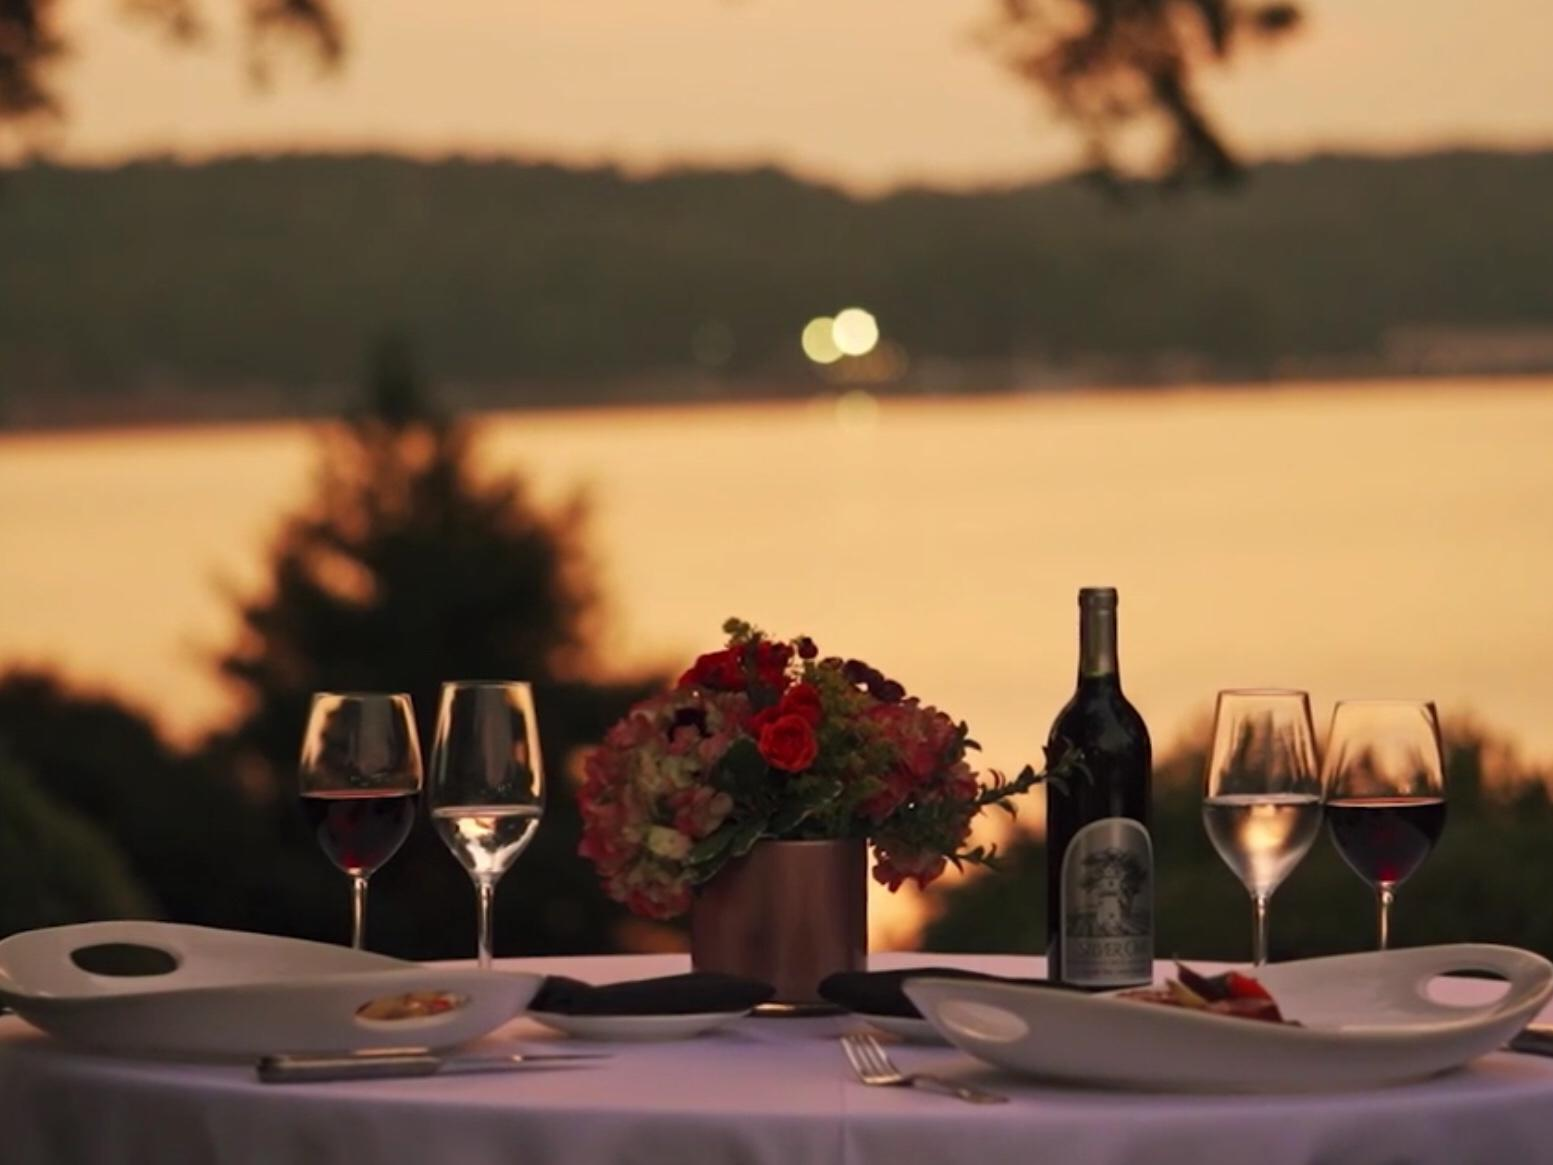 view of lake at sunset with wine, food, and flowers